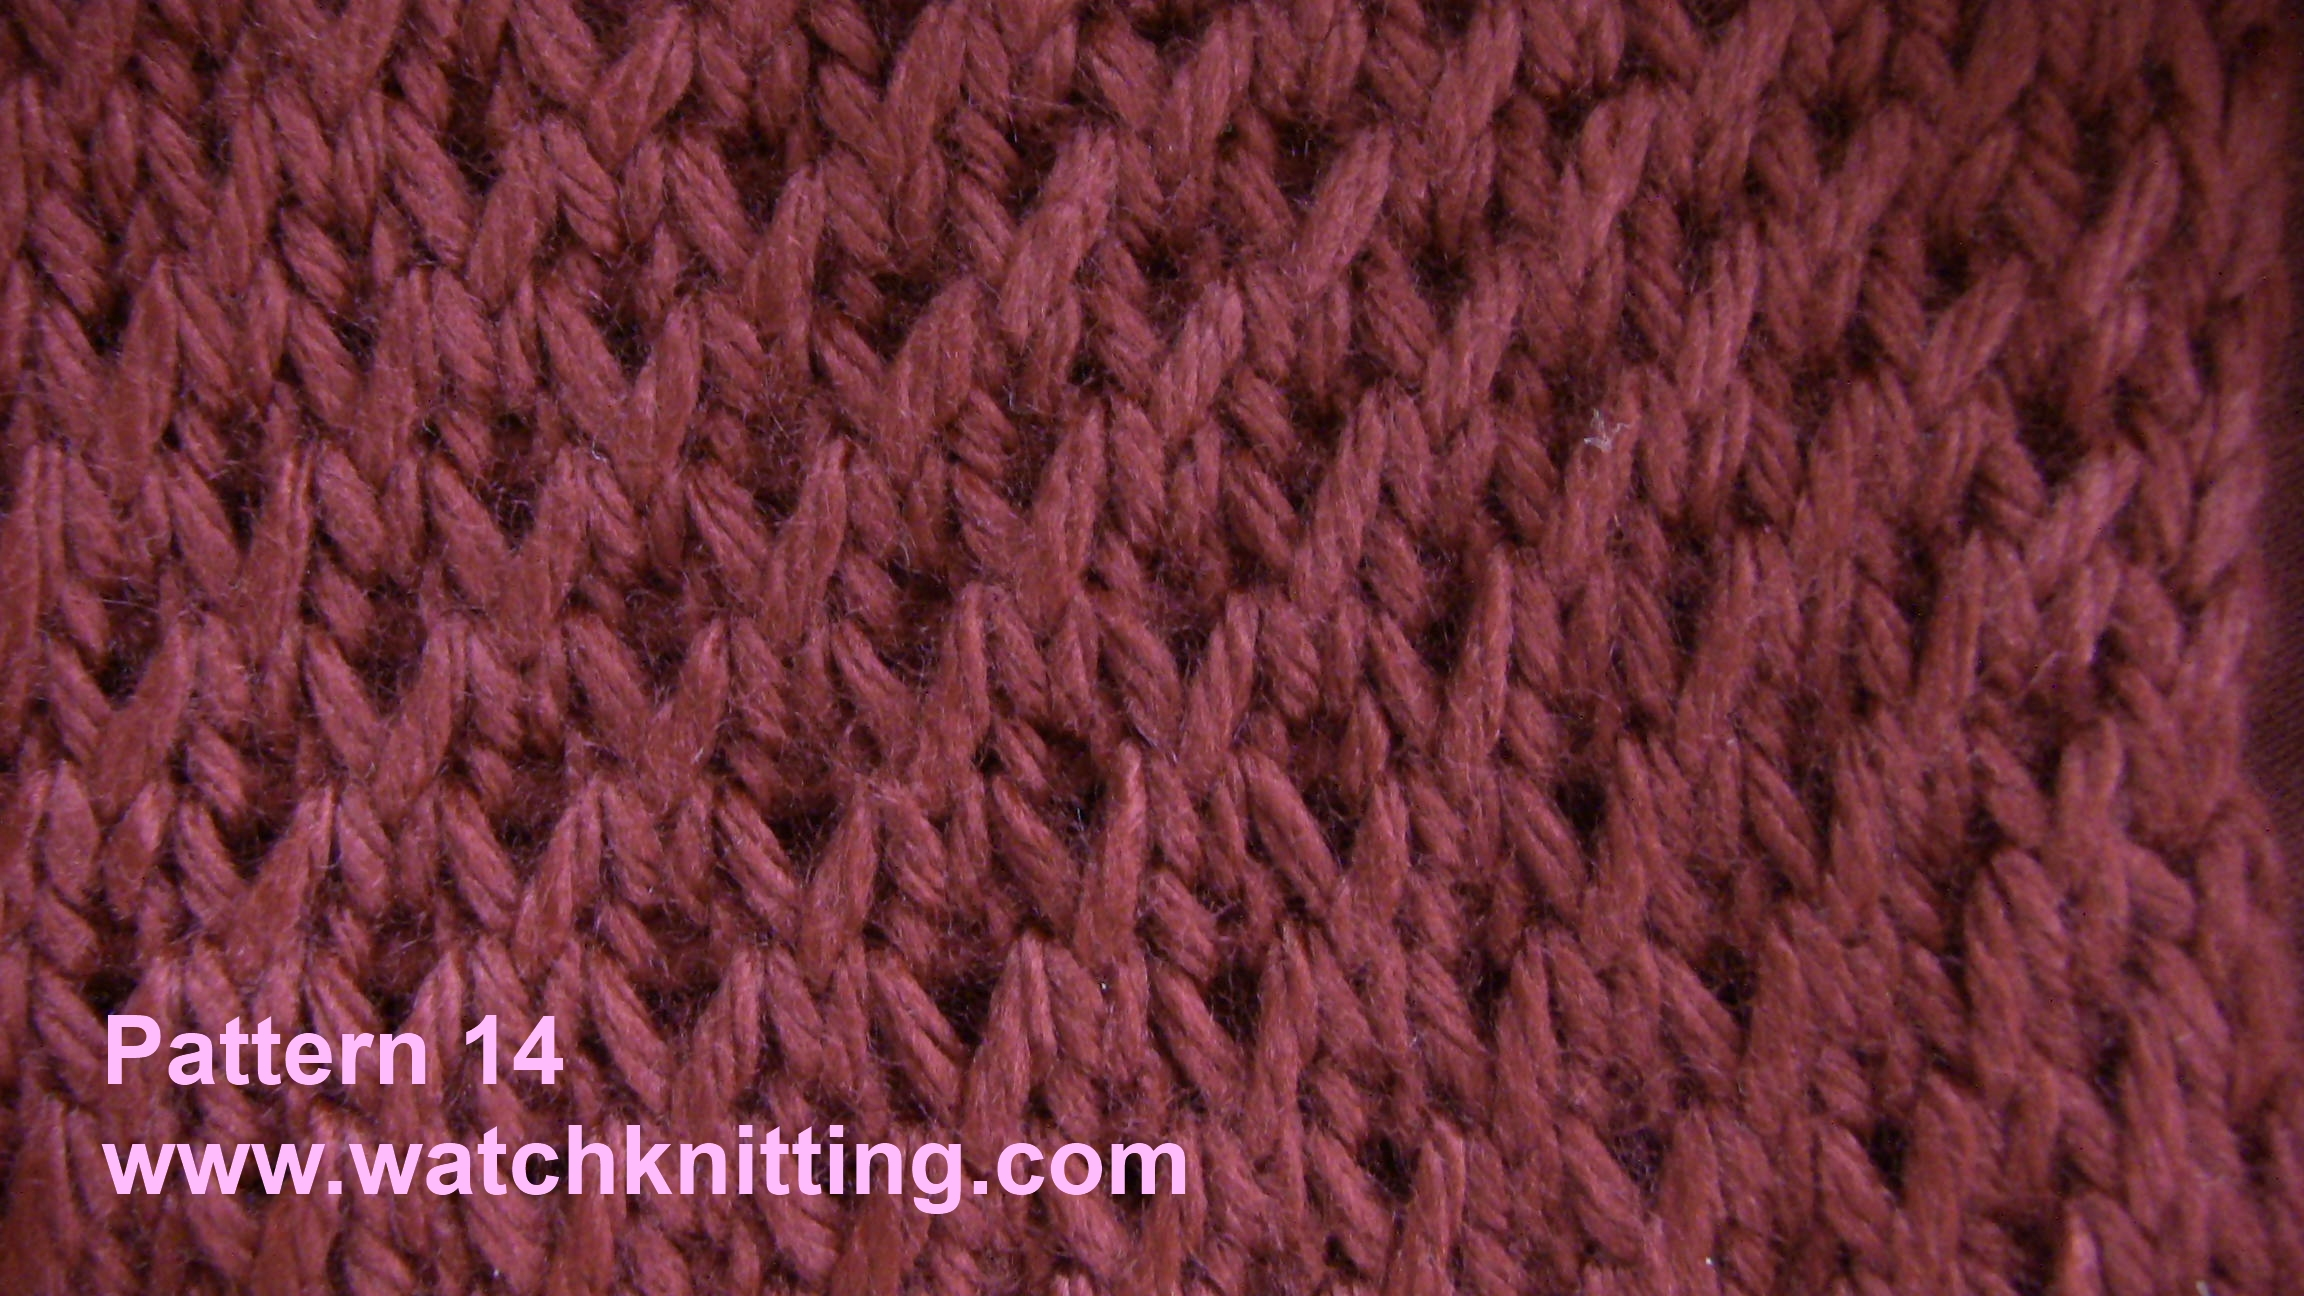 Knitting Patterns With Picture Instructions : Simple Knitting models by basic stitches